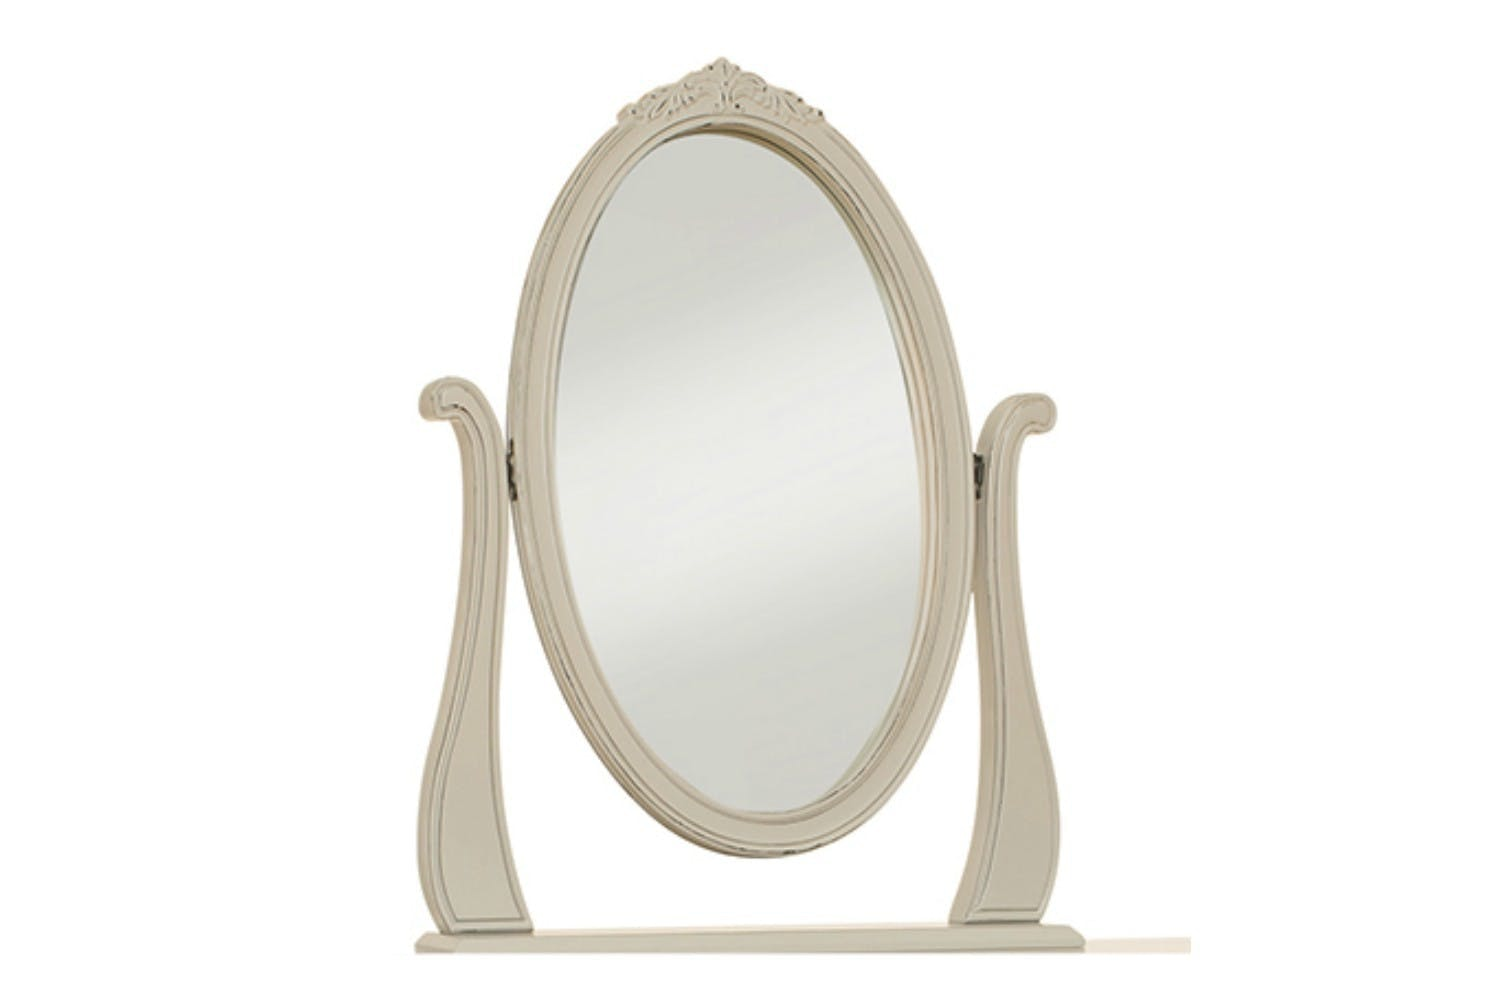 Harrogate Oval Mirror